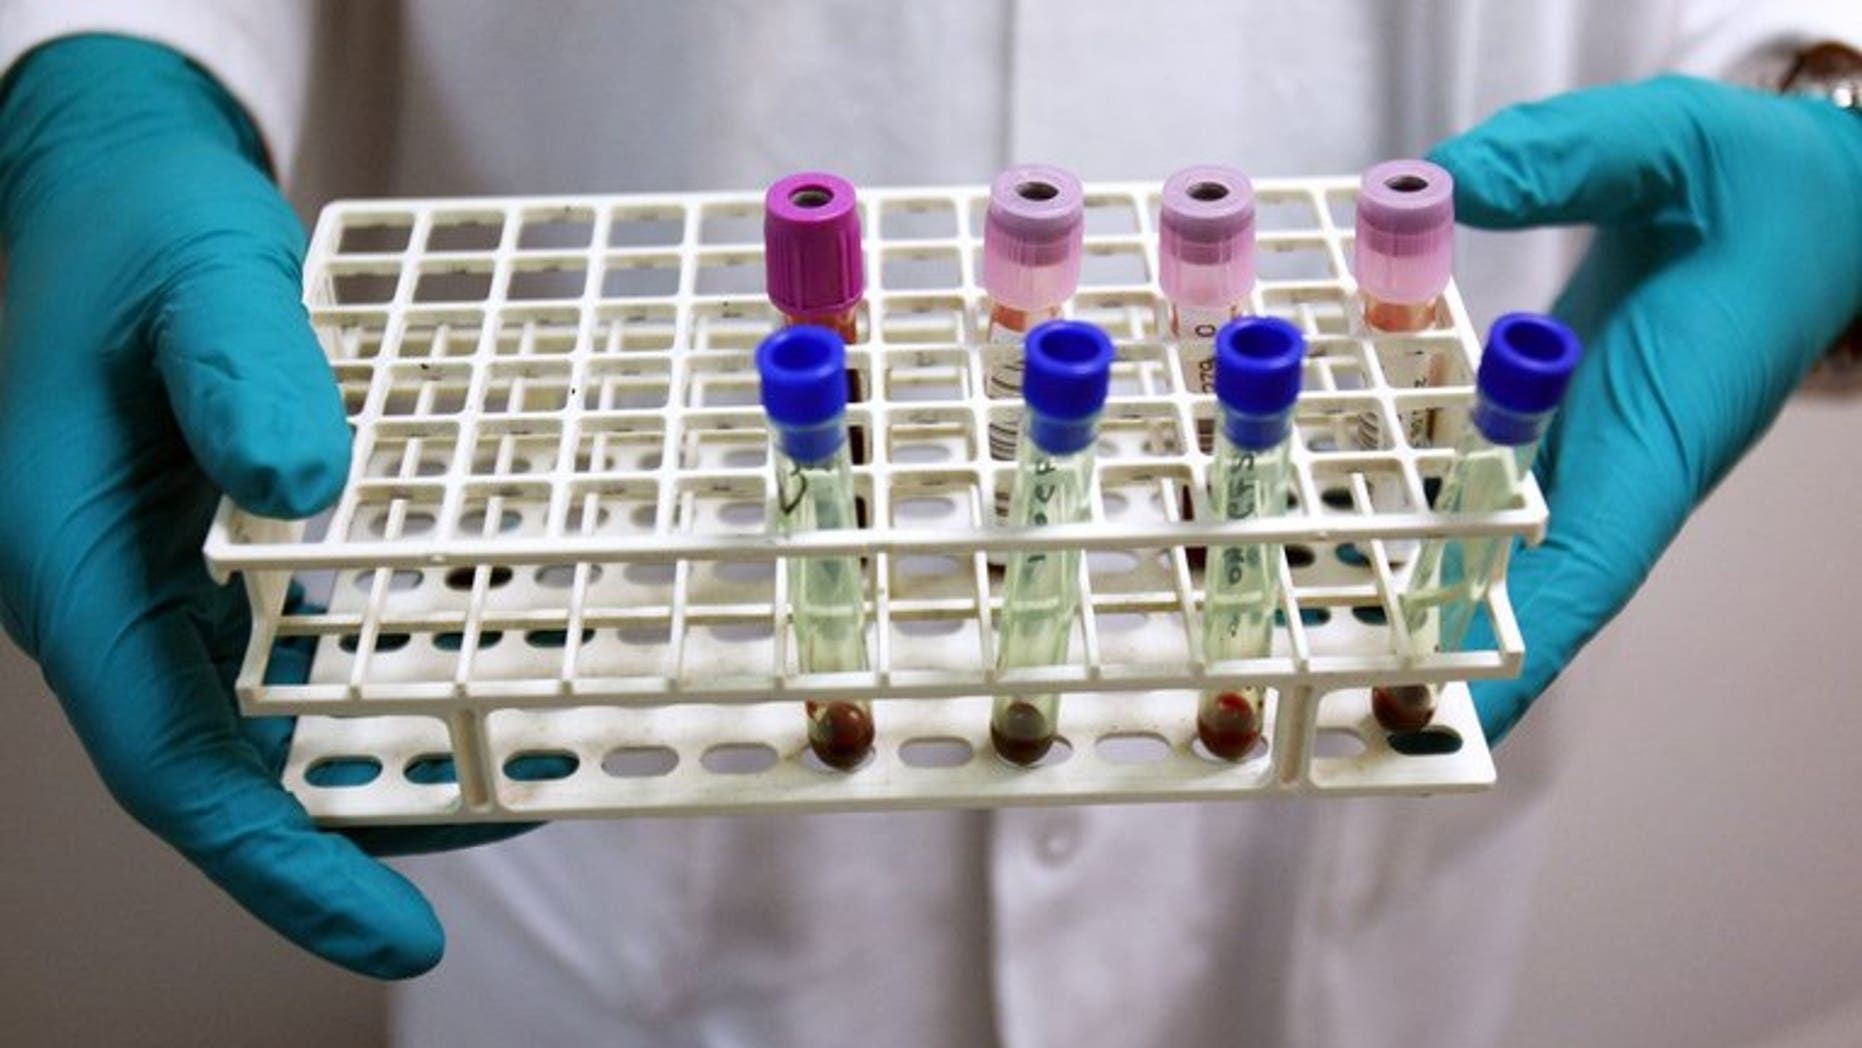 This file illustration photo shows a technician holding blood samples a laboratory near Paris. A Singapore-based group fighting the spread of viral hepatitis called for greater political will to combat the disease, as new data showed it killed one person every 30 seconds in Asia.